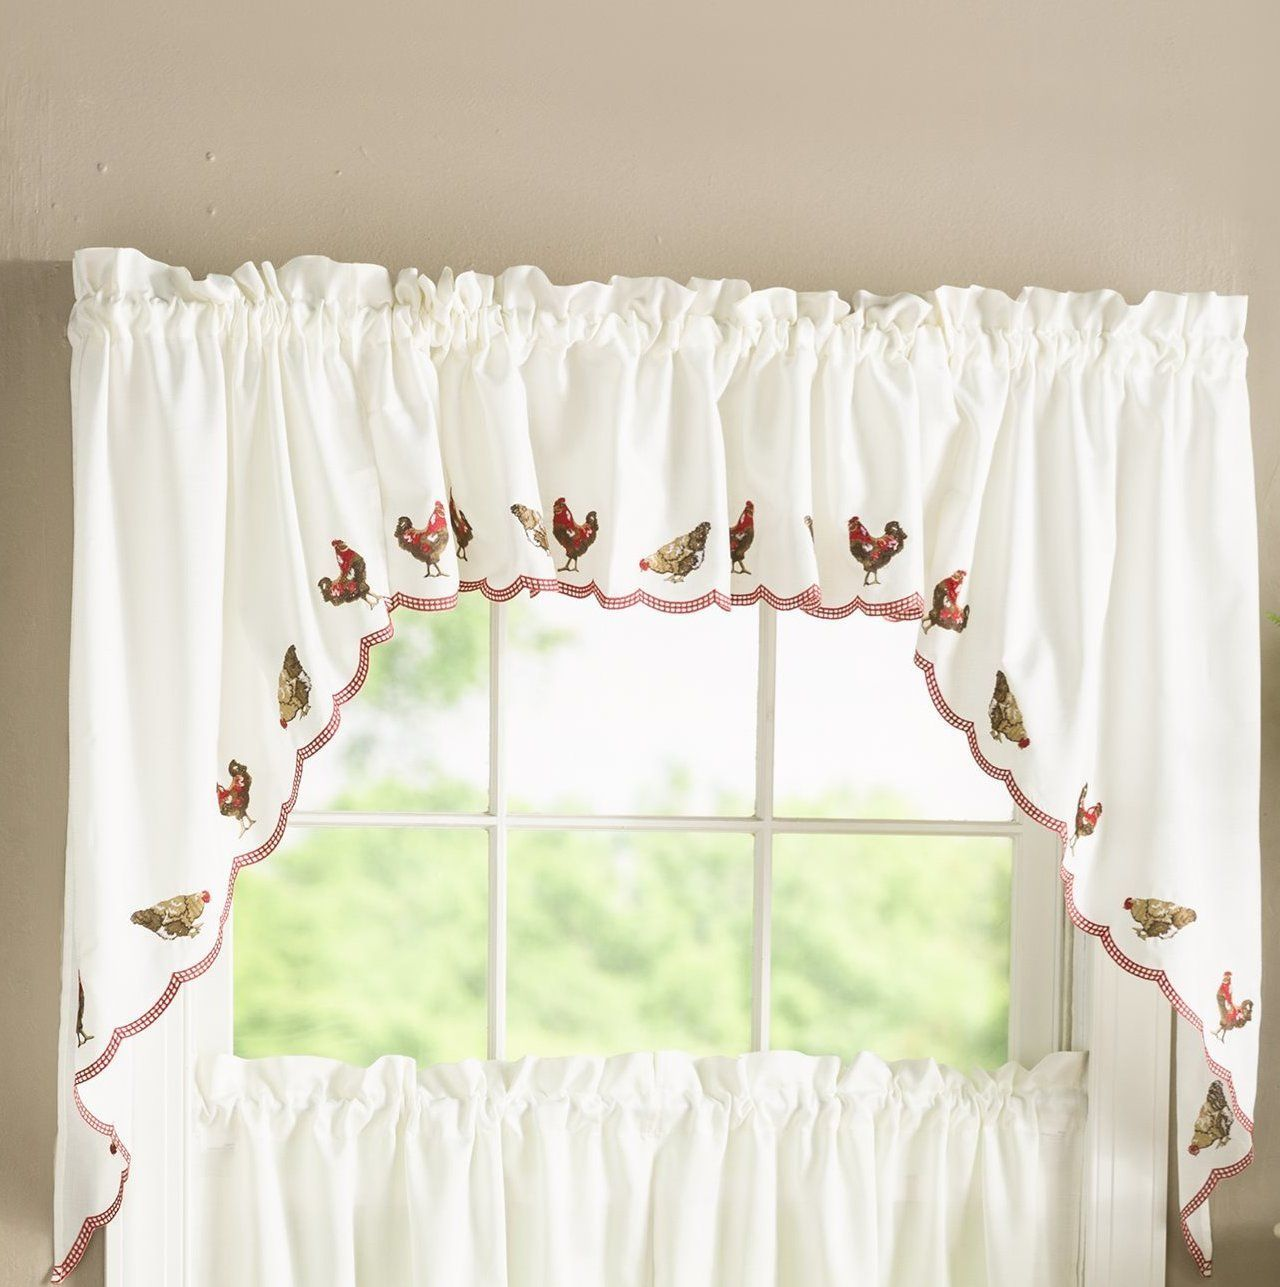 Best Farmhouse Valances Discover The Best Farm Home Style Valances And Window Treatments For Your Farmhouse Window Treatments Farmhouse Valances House Styles